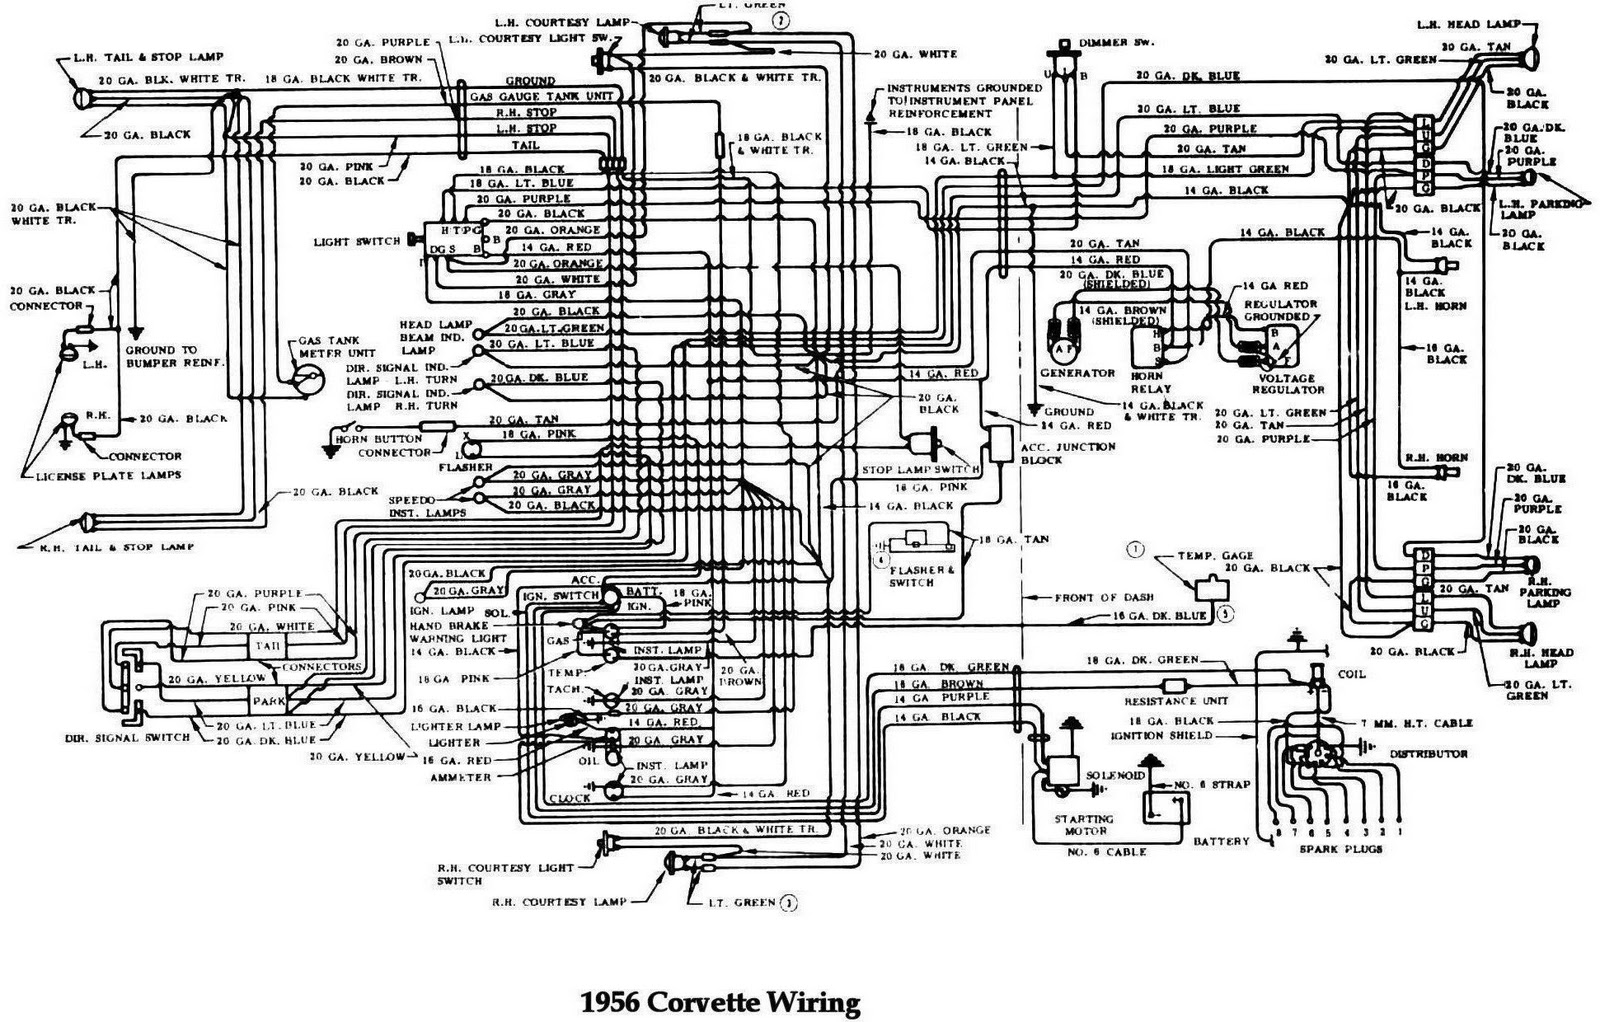 Chevrolet Corvette Wiring Diagram Free Picture 82 Schematic 1956 All About 1973 1982